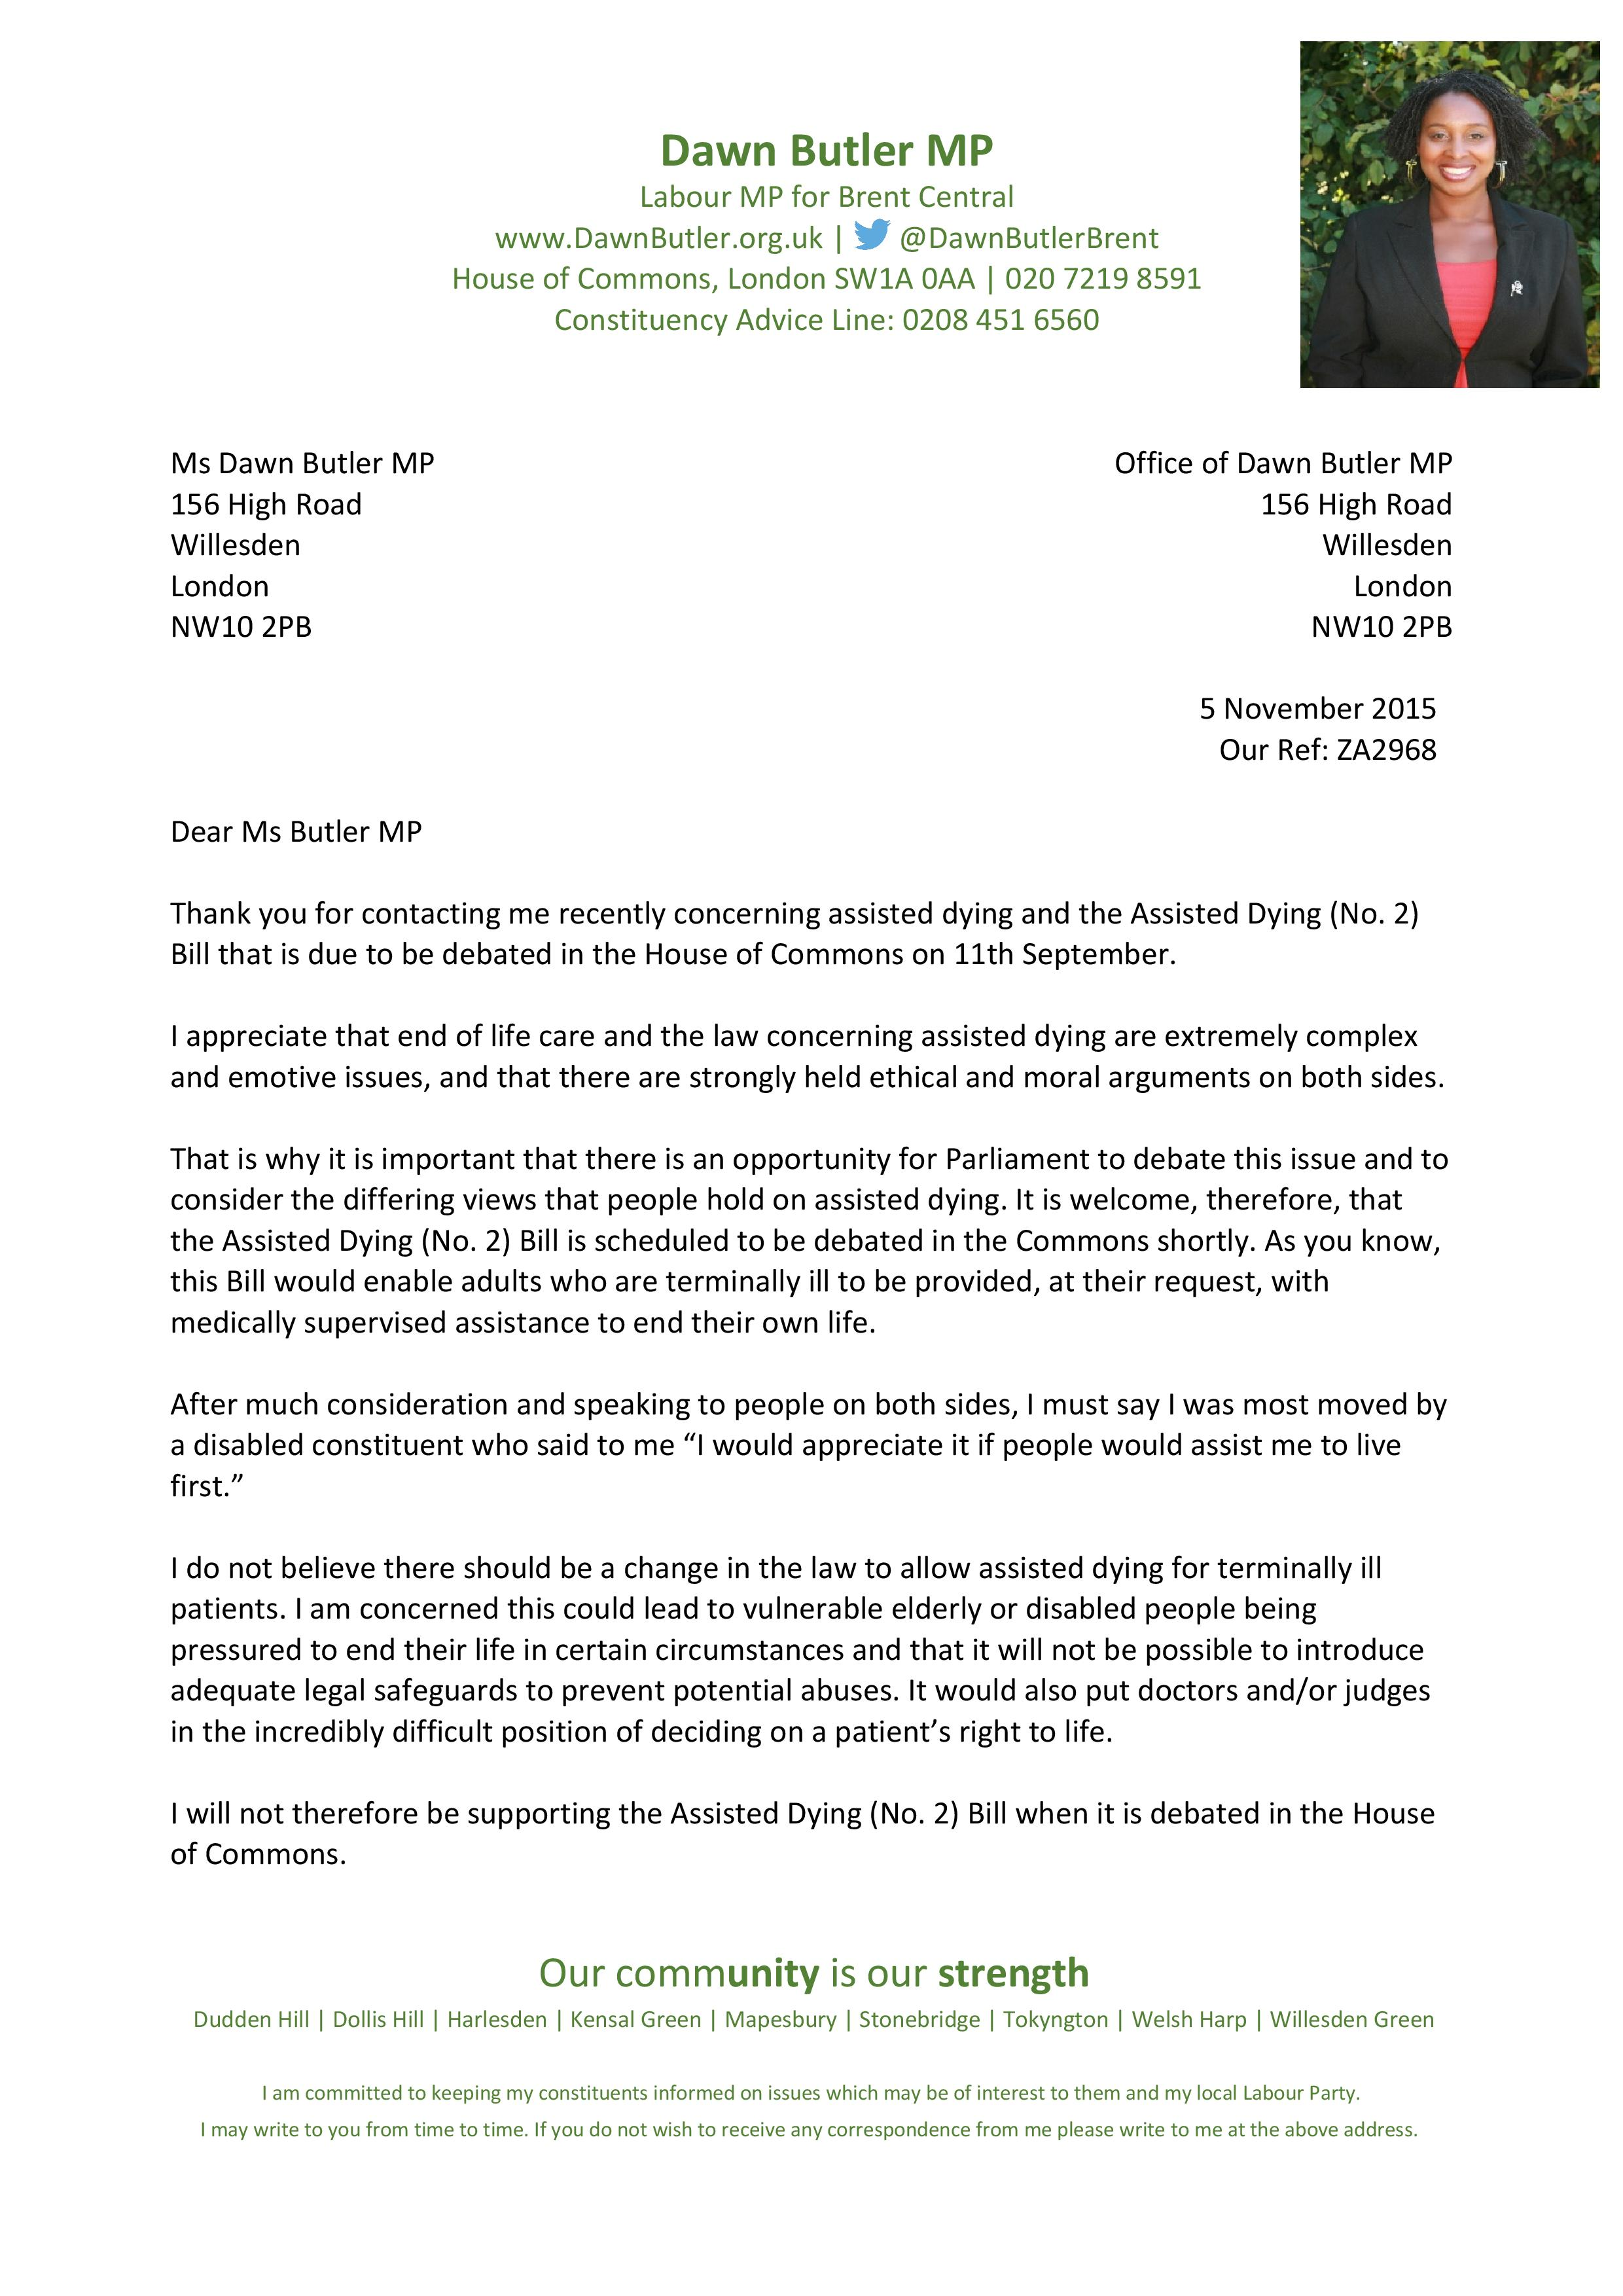 assisted_dying_letter-page-001.jpg